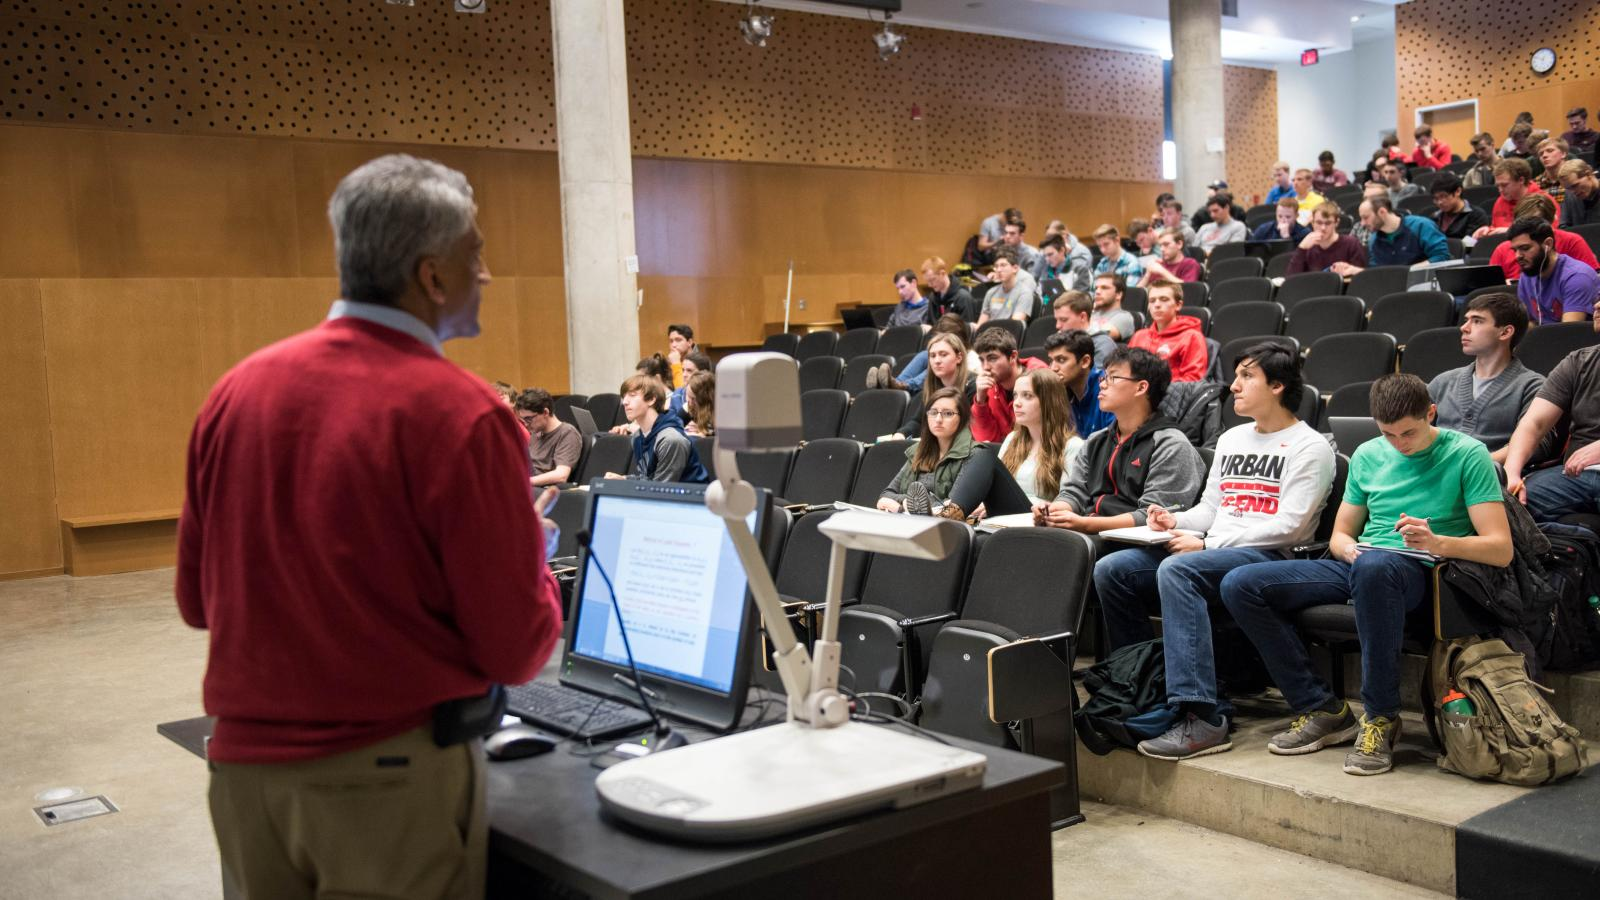 Male teacher standing in front of lecture hall full of students